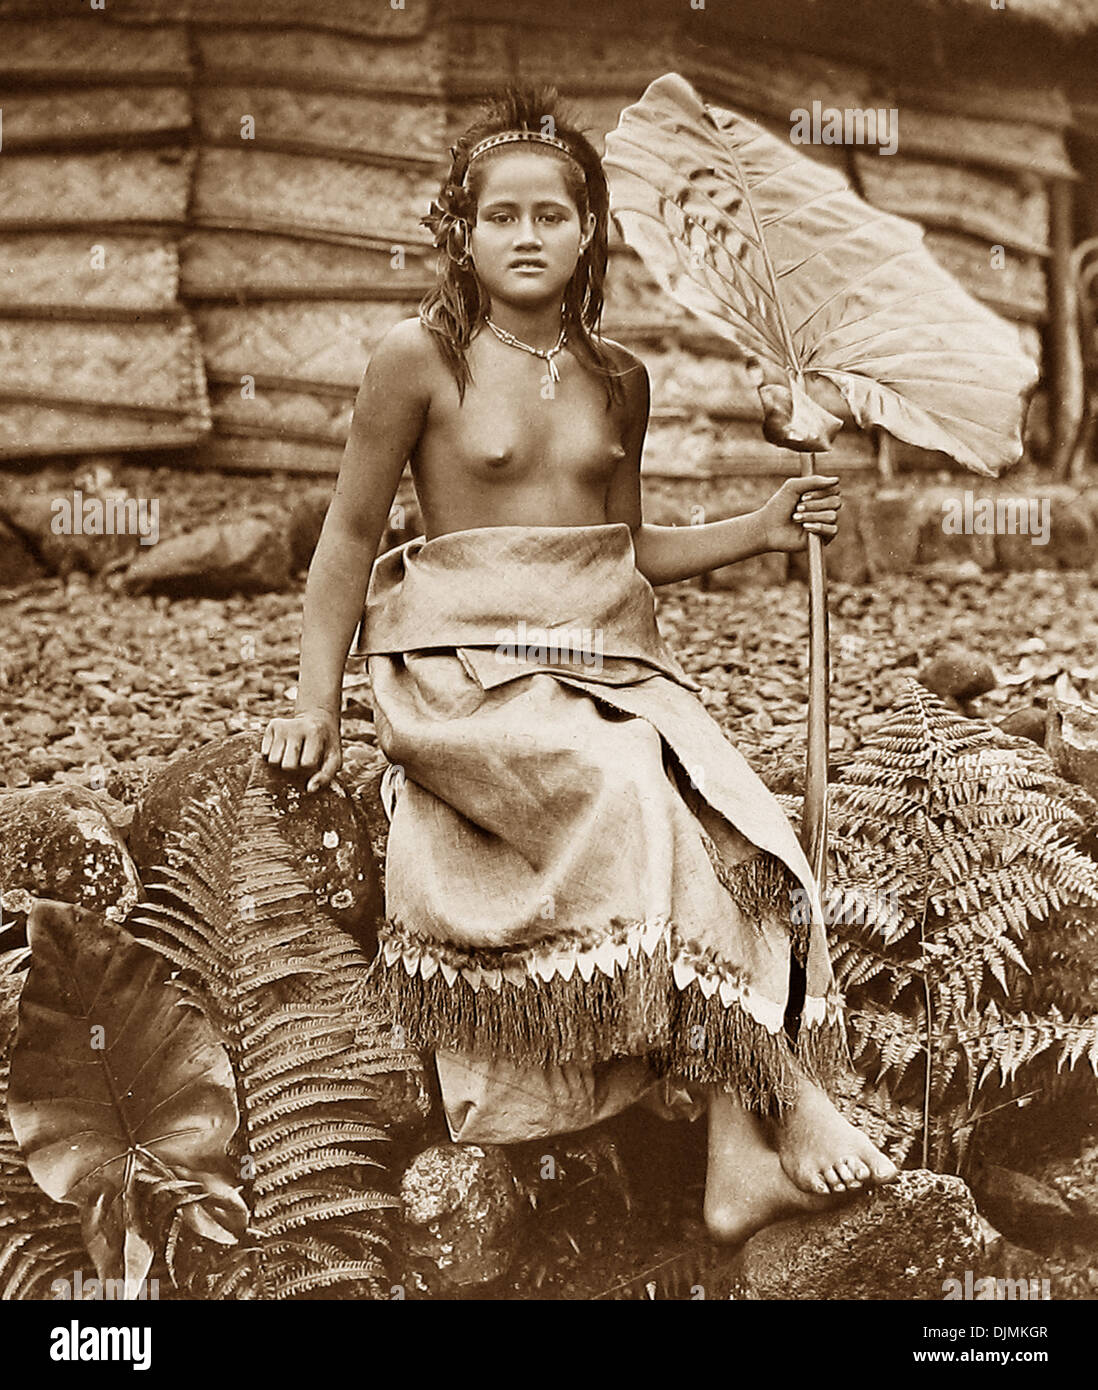 A Samoan Chief's Daughter Victorian period - Stock Image